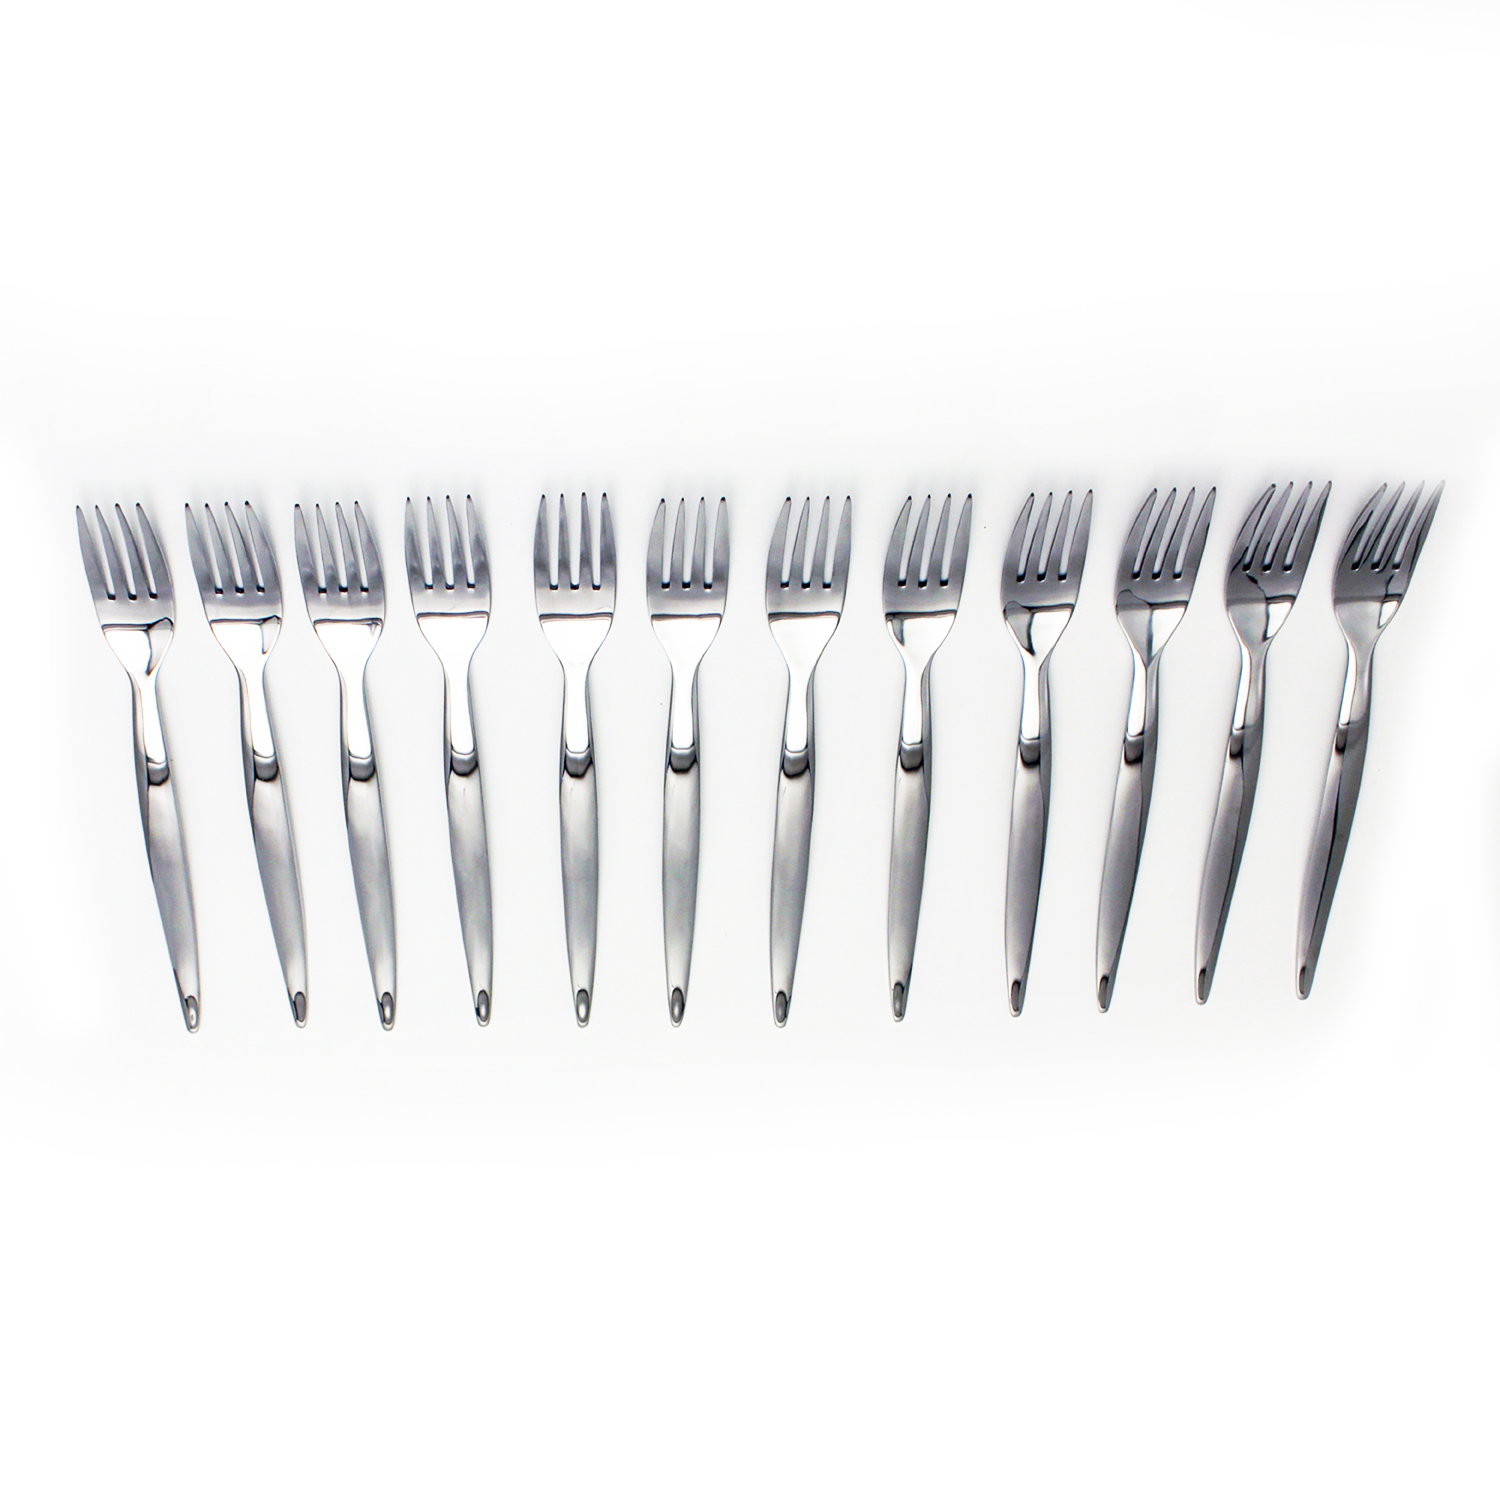 Saxophone Table Forks (12x).